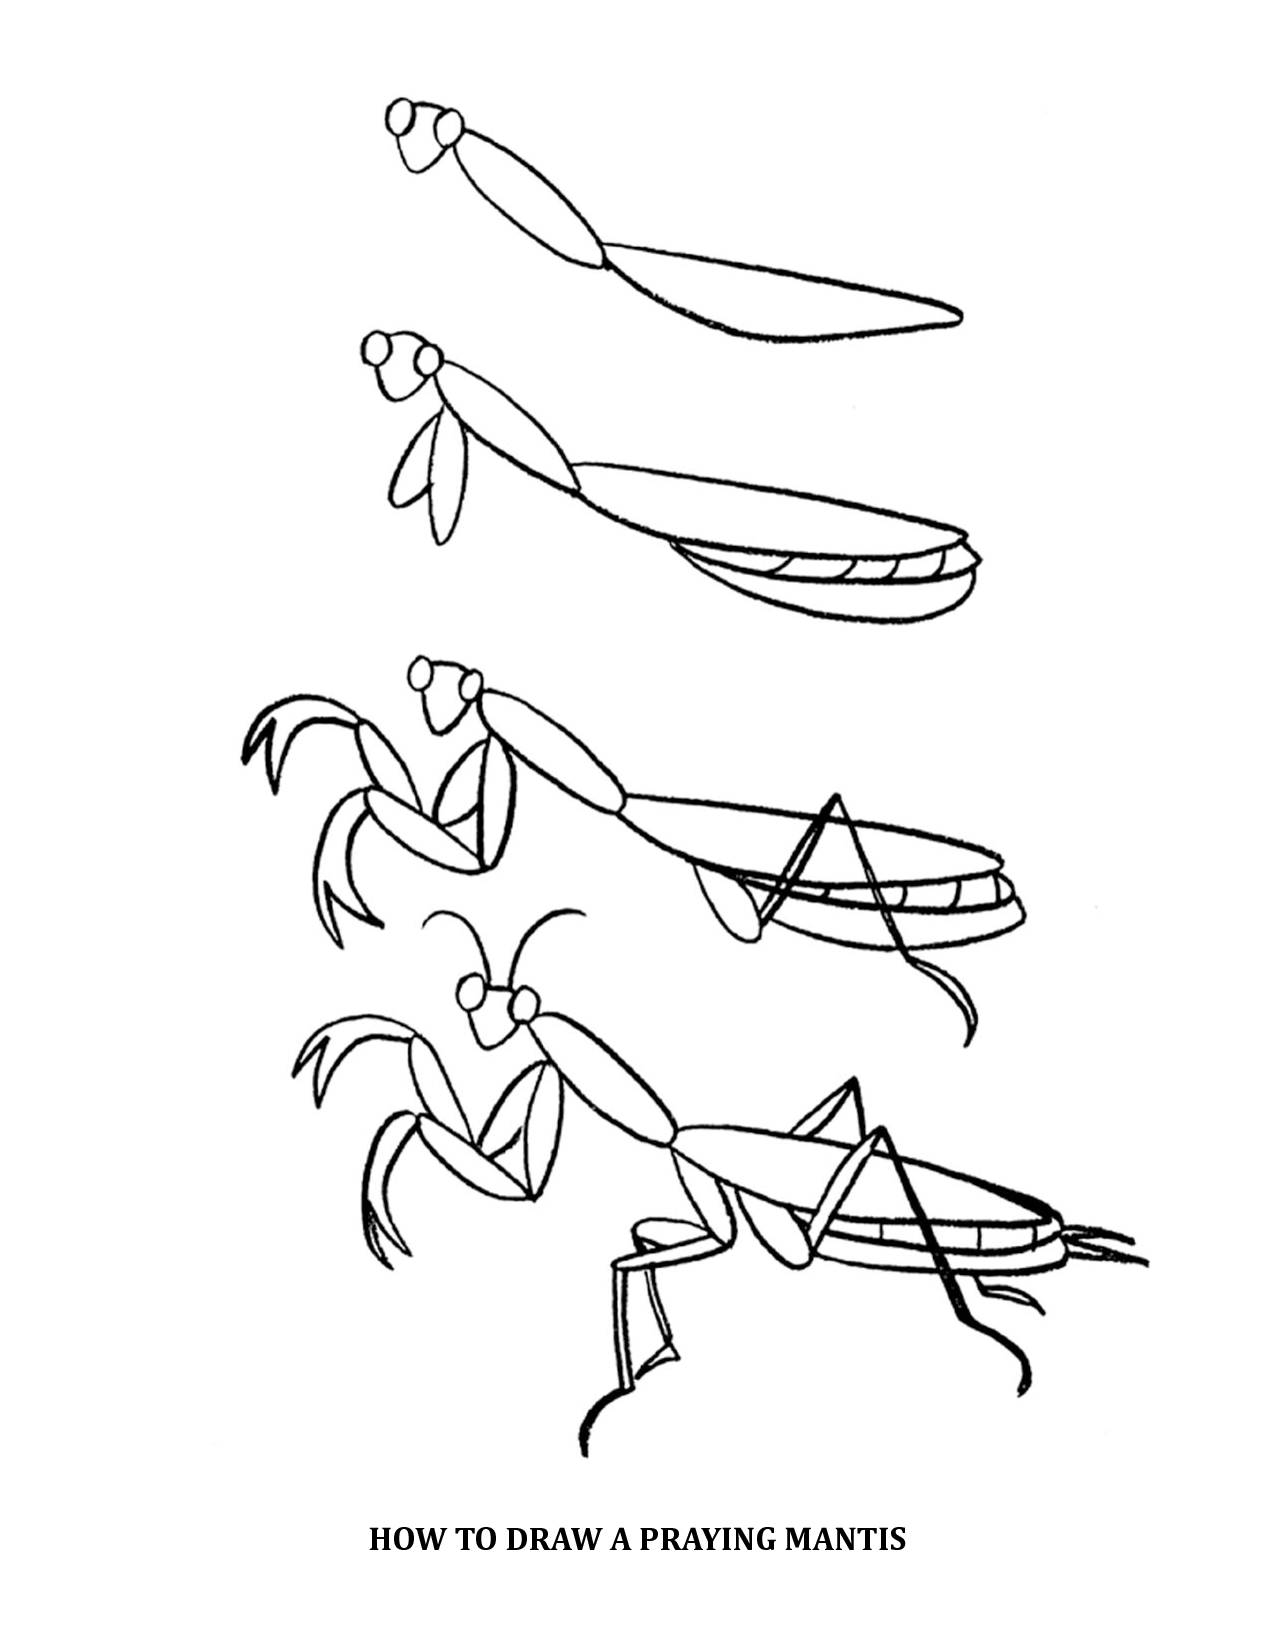 How To Draw A Praying Mantis How To Draw A Praying Mantis